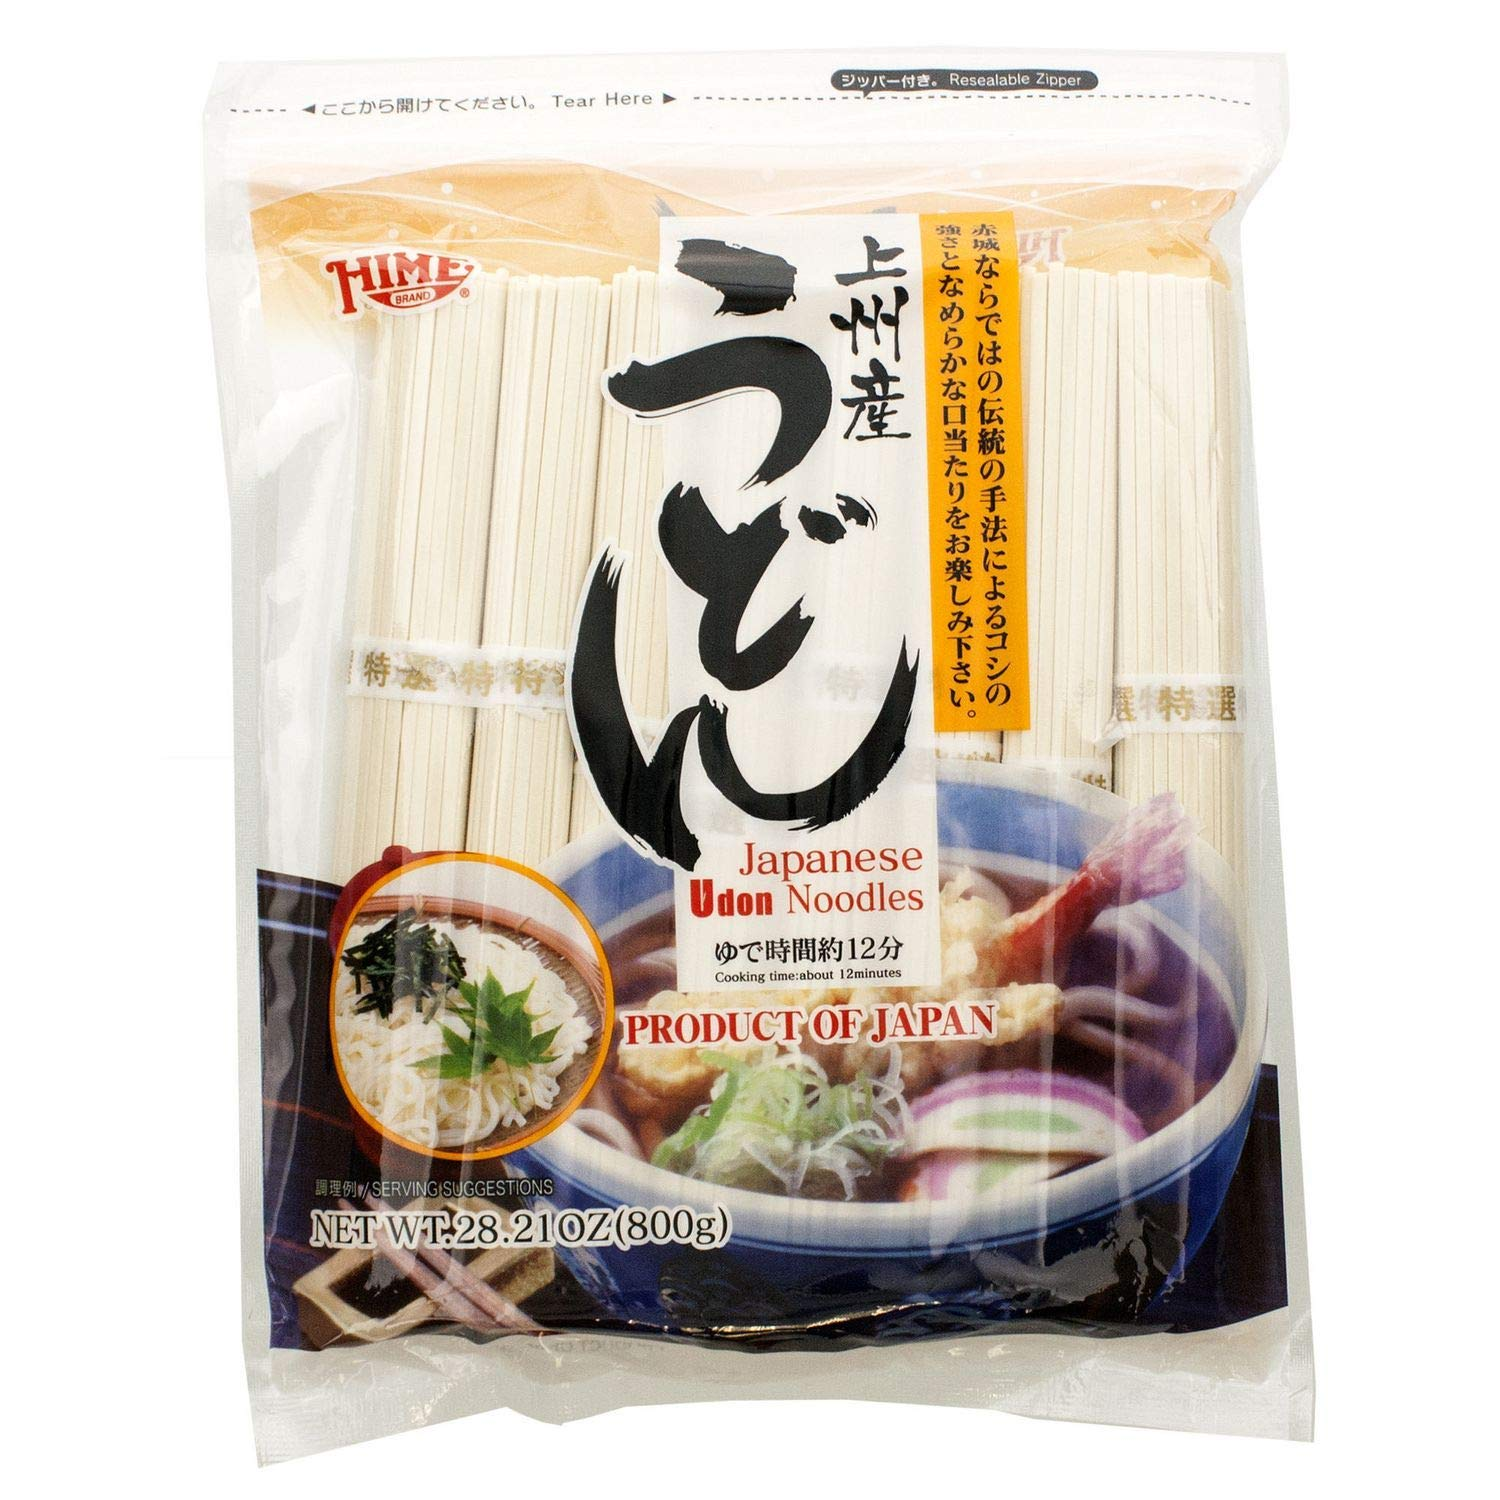 Hime Dried Udon Noodles service 28.21-Ounce - OFFicial store 10 PACK OF